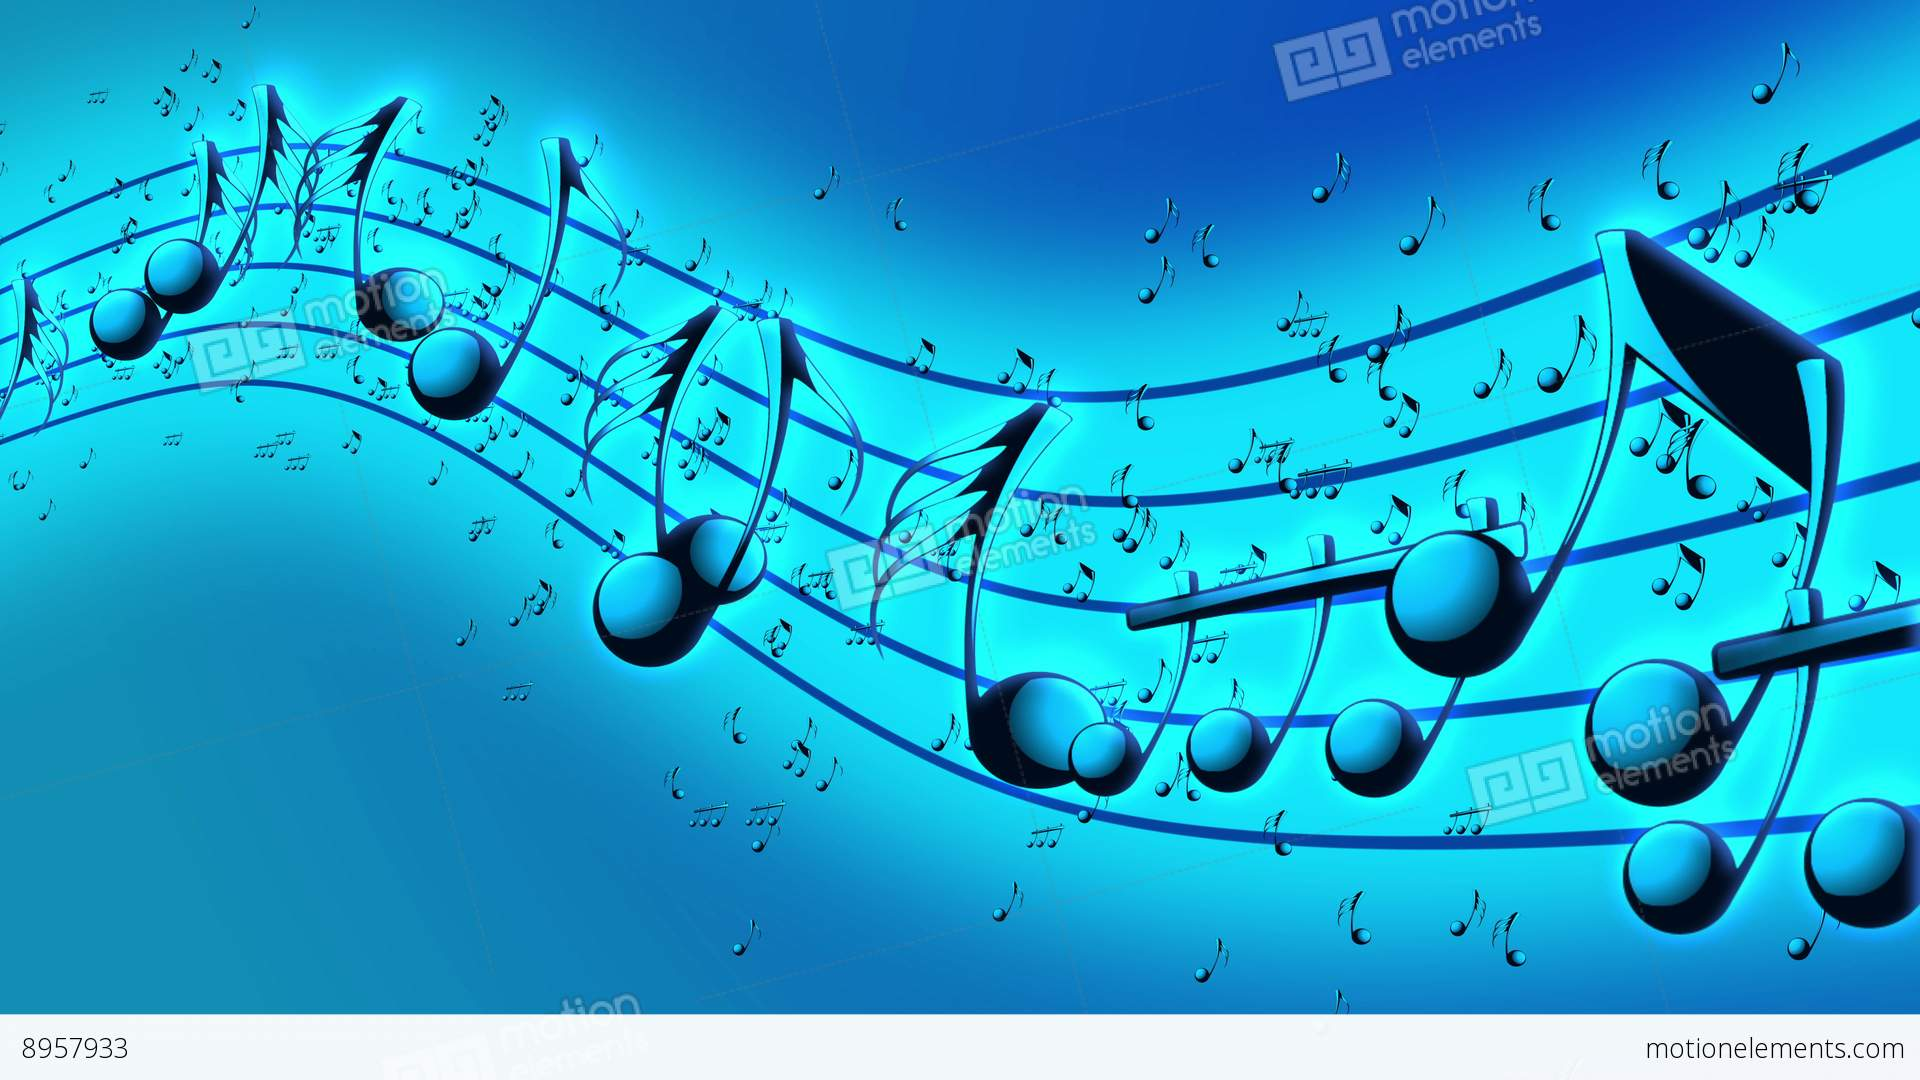 Cute Science Wallpaper Animated Background With Musical Notes Stock Video Footage